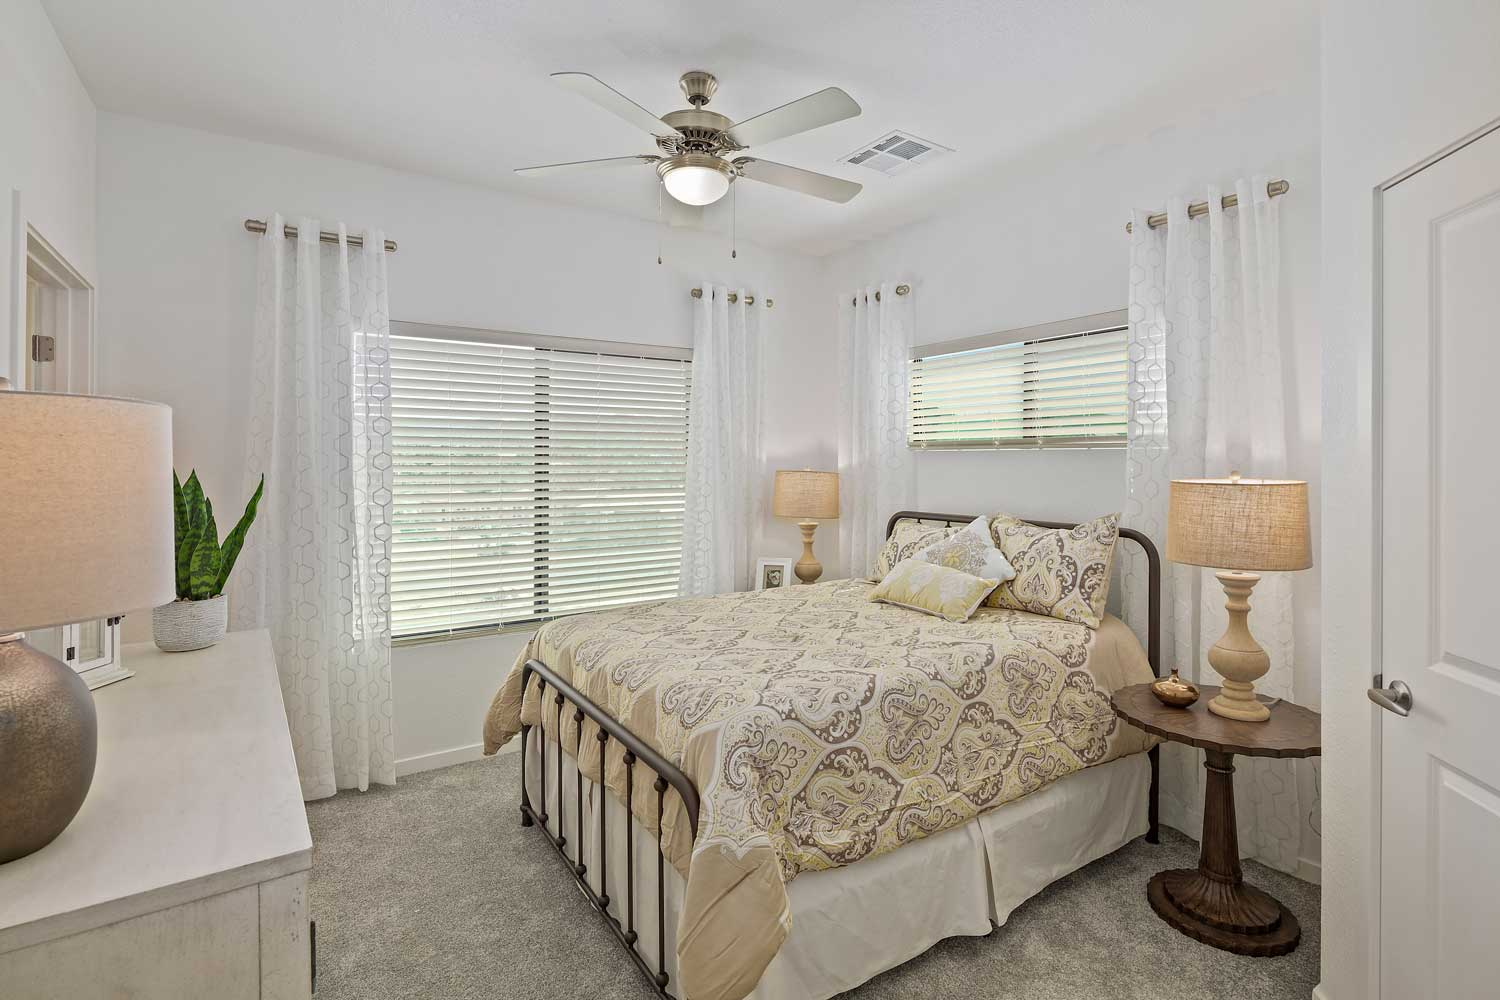 Bedroom with Ceiling Fan at Winfield at the Ranch Apartments in Prescott, AZ